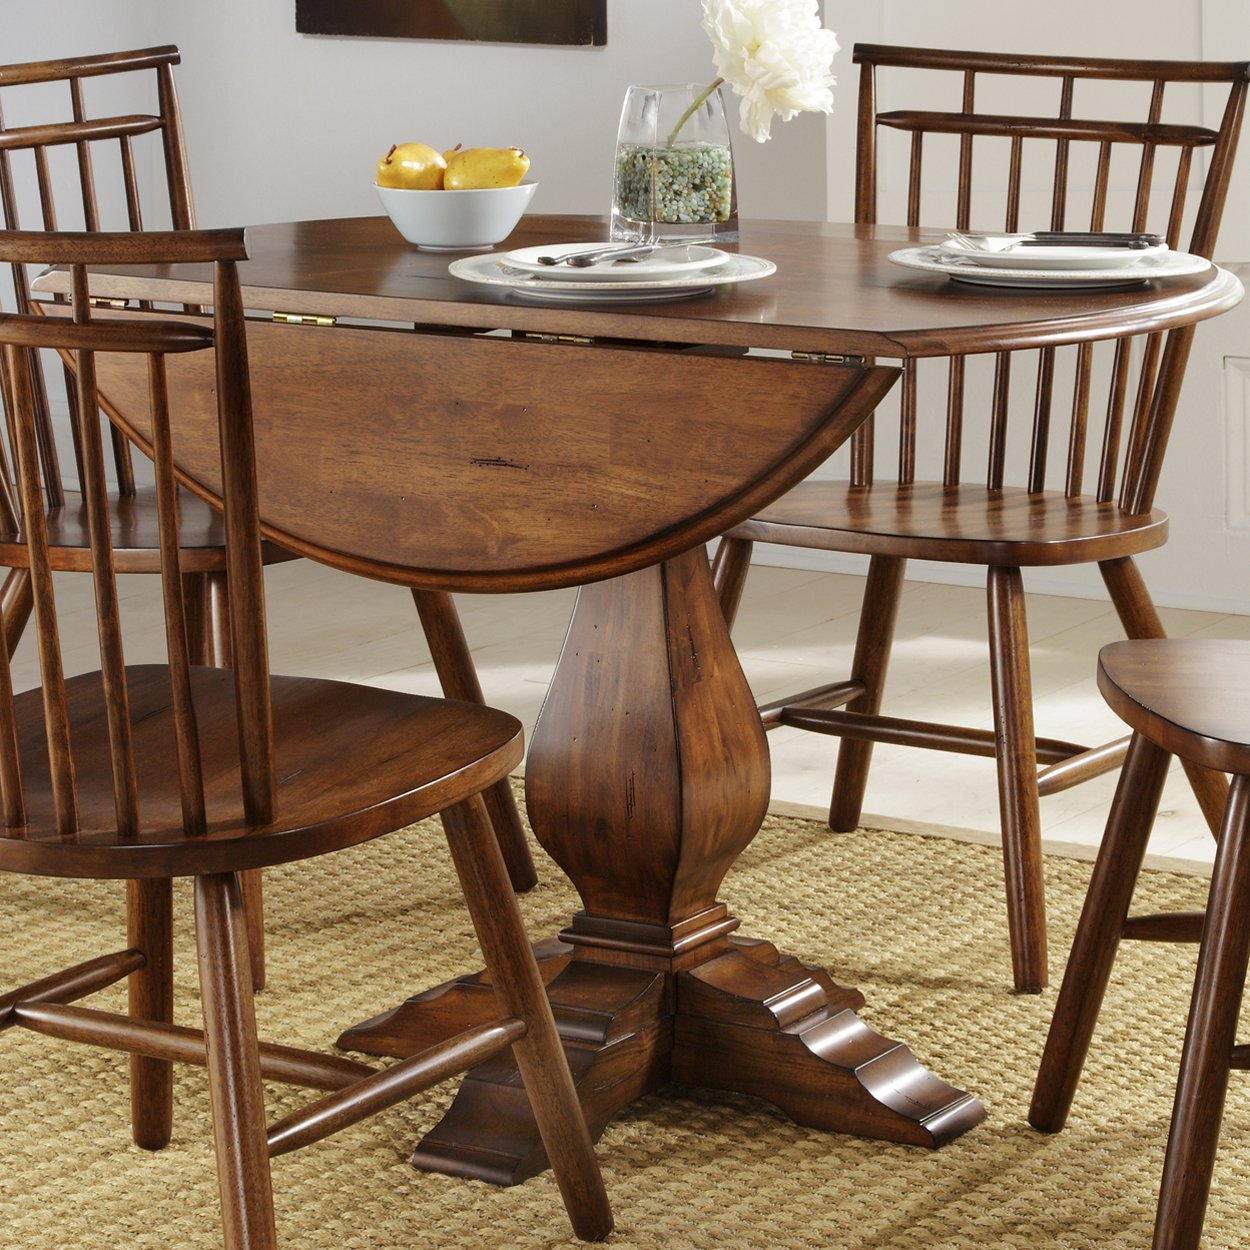 Image of: round drop leaf table and chairs